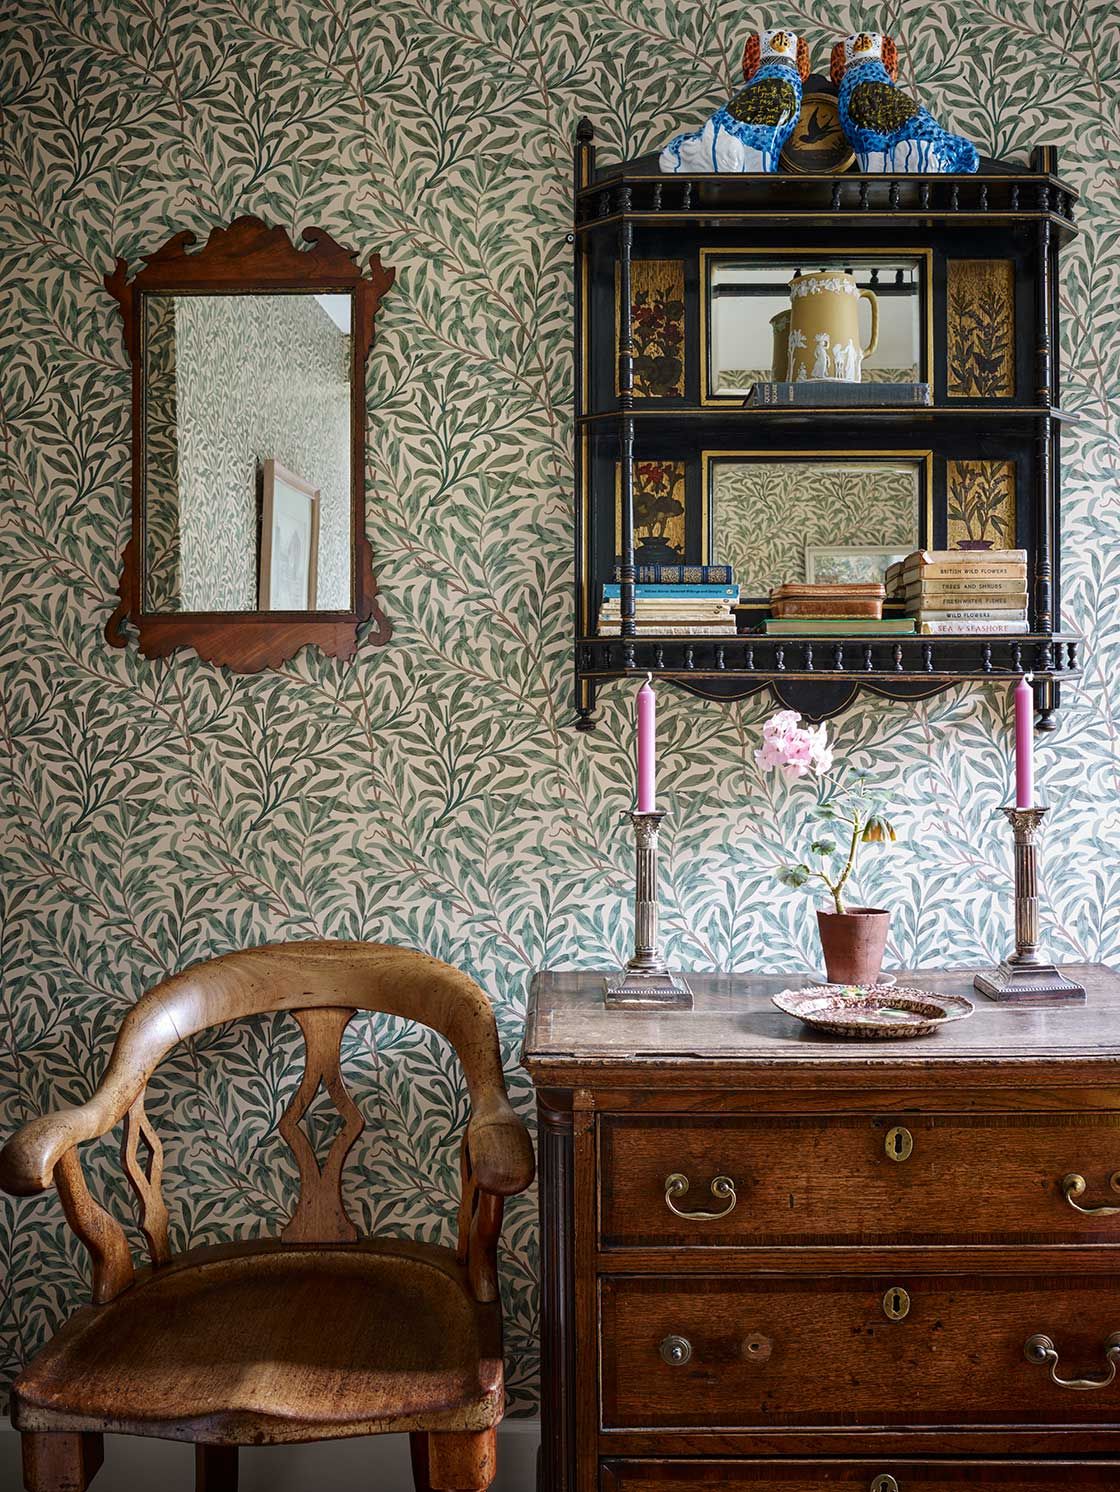 Eclectic Cottage Interior